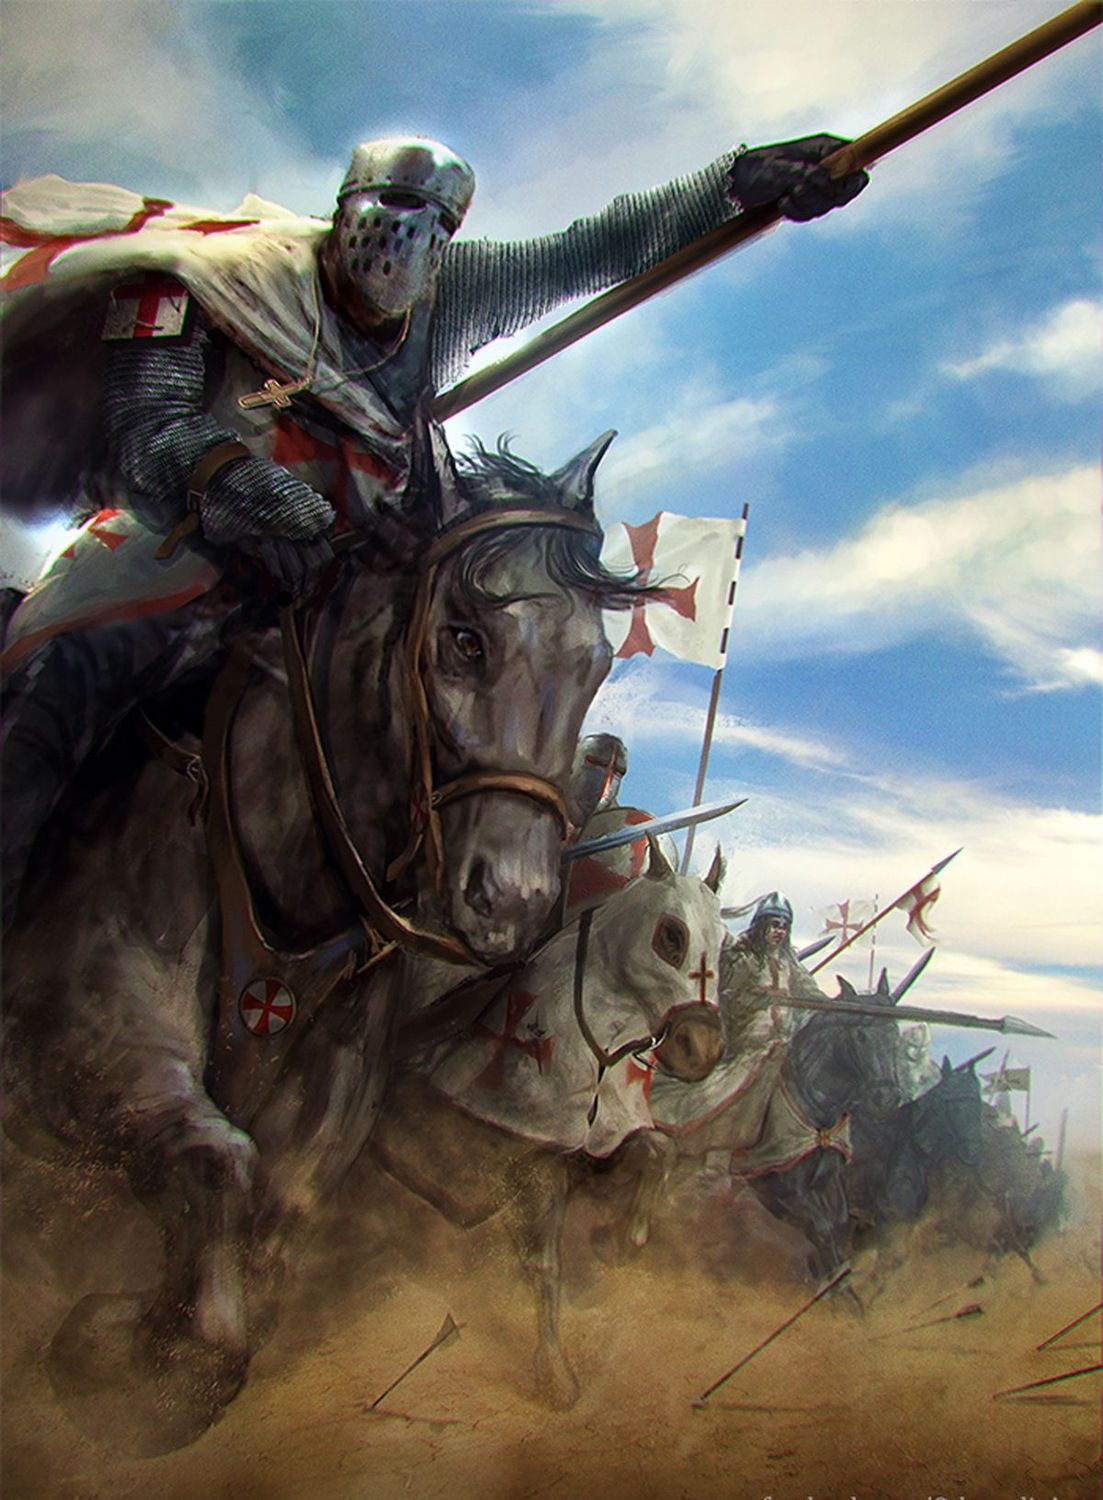 Image result for temple knights attack horse